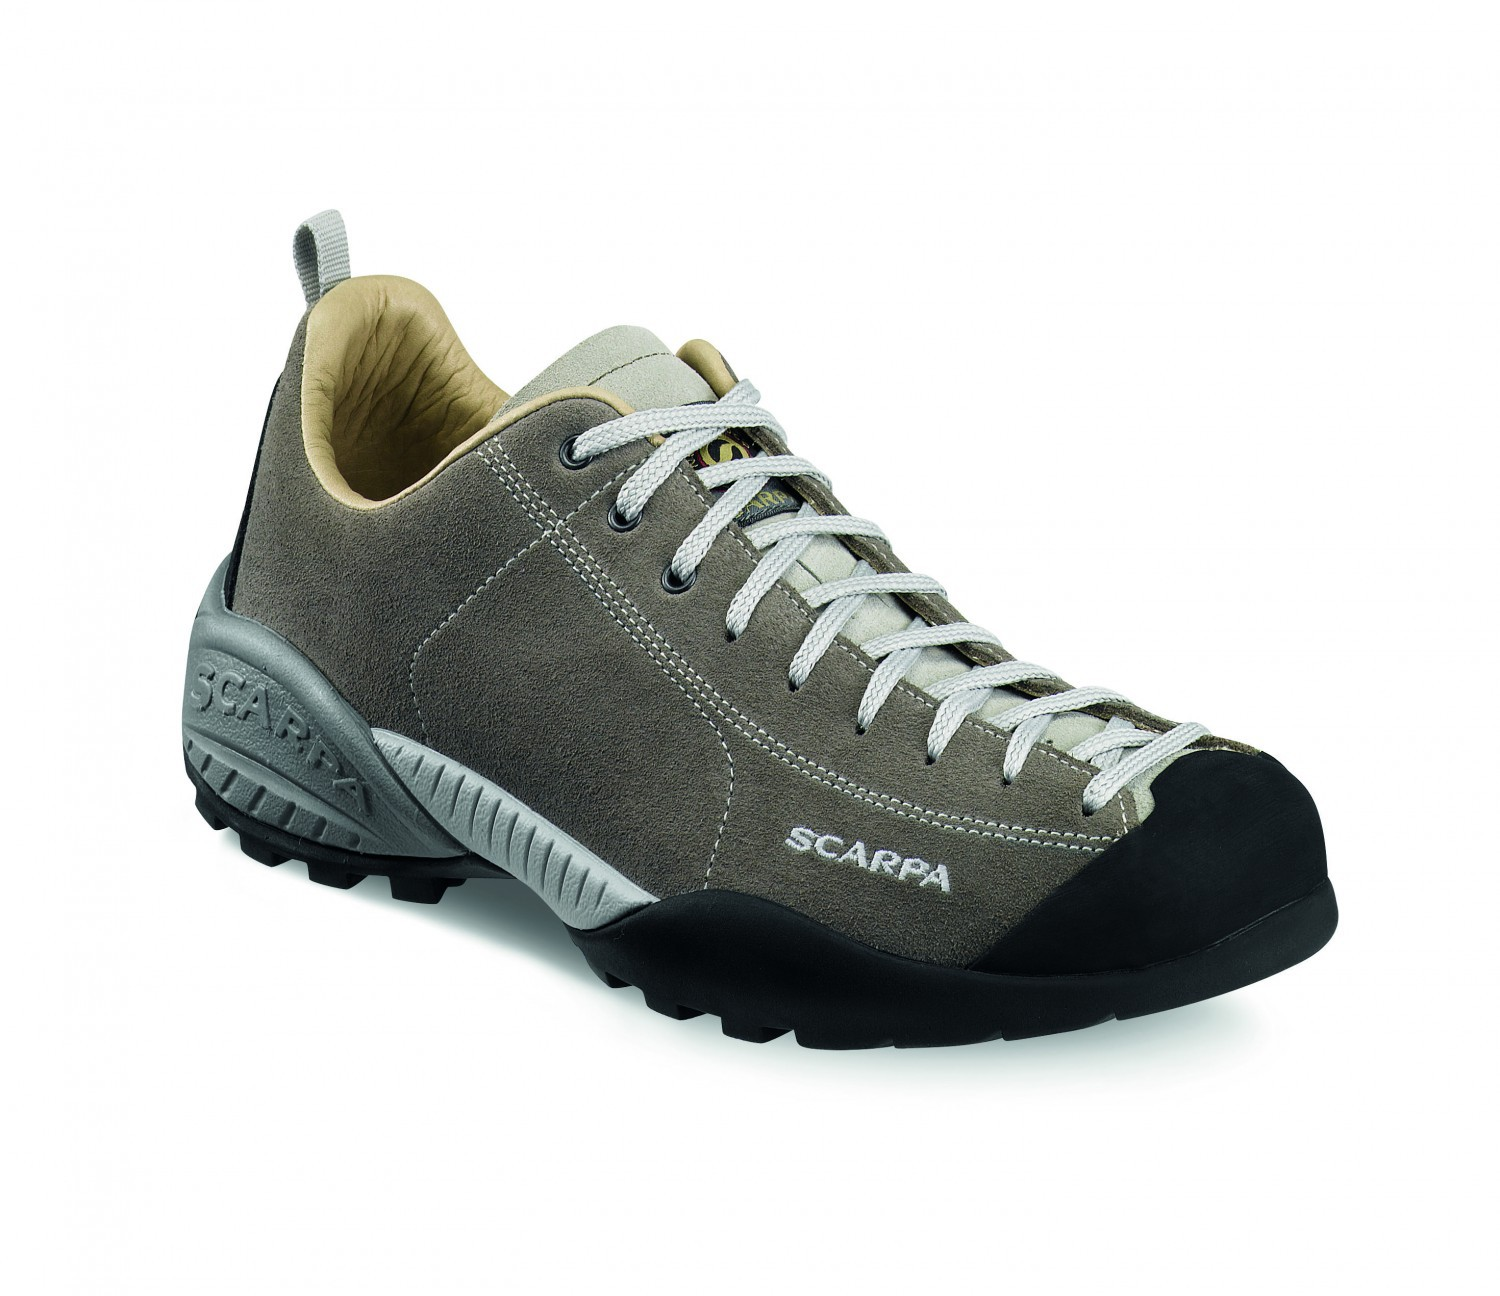 Scarpa Mojito Leather Cigar-30